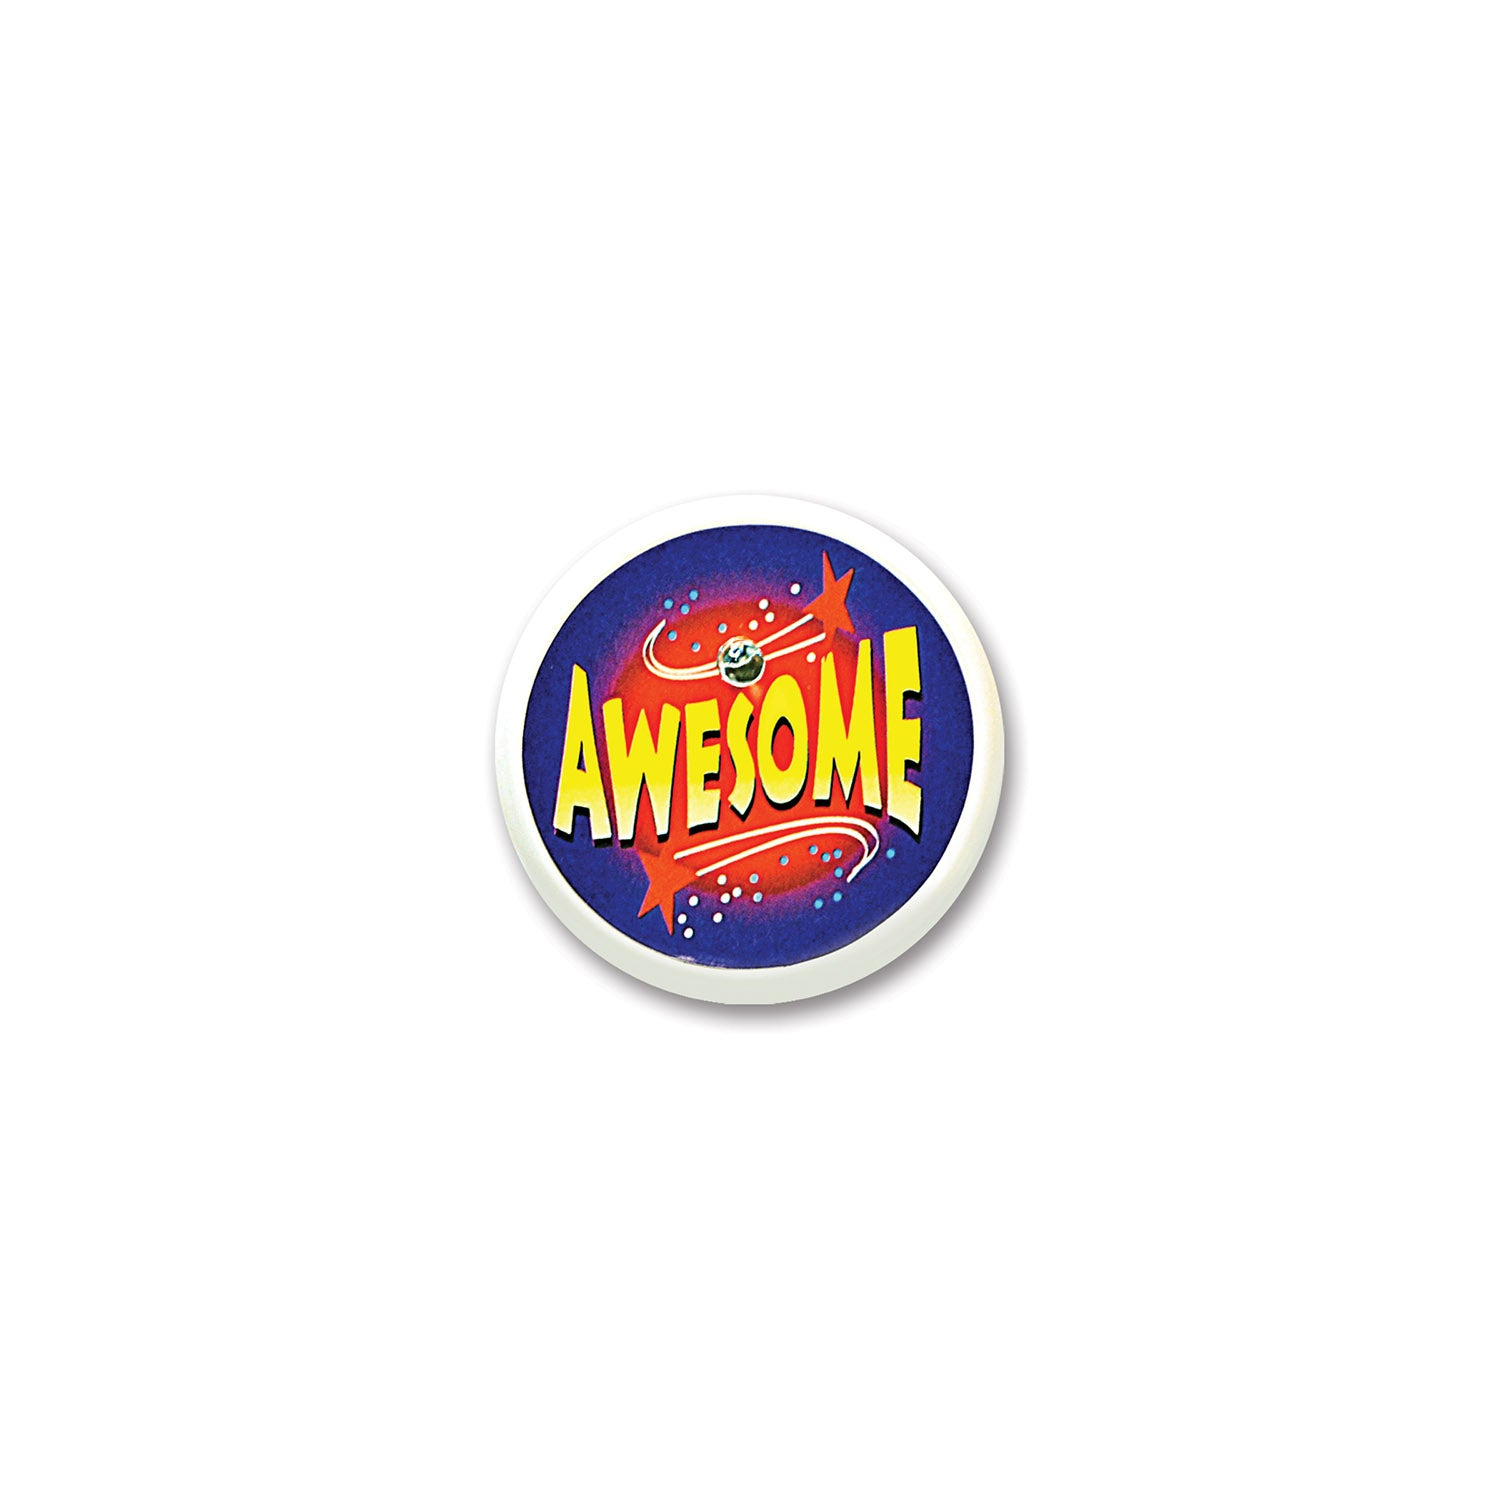 Awesome Blinking Button by Beistle - School Awards and Supplies Decorations